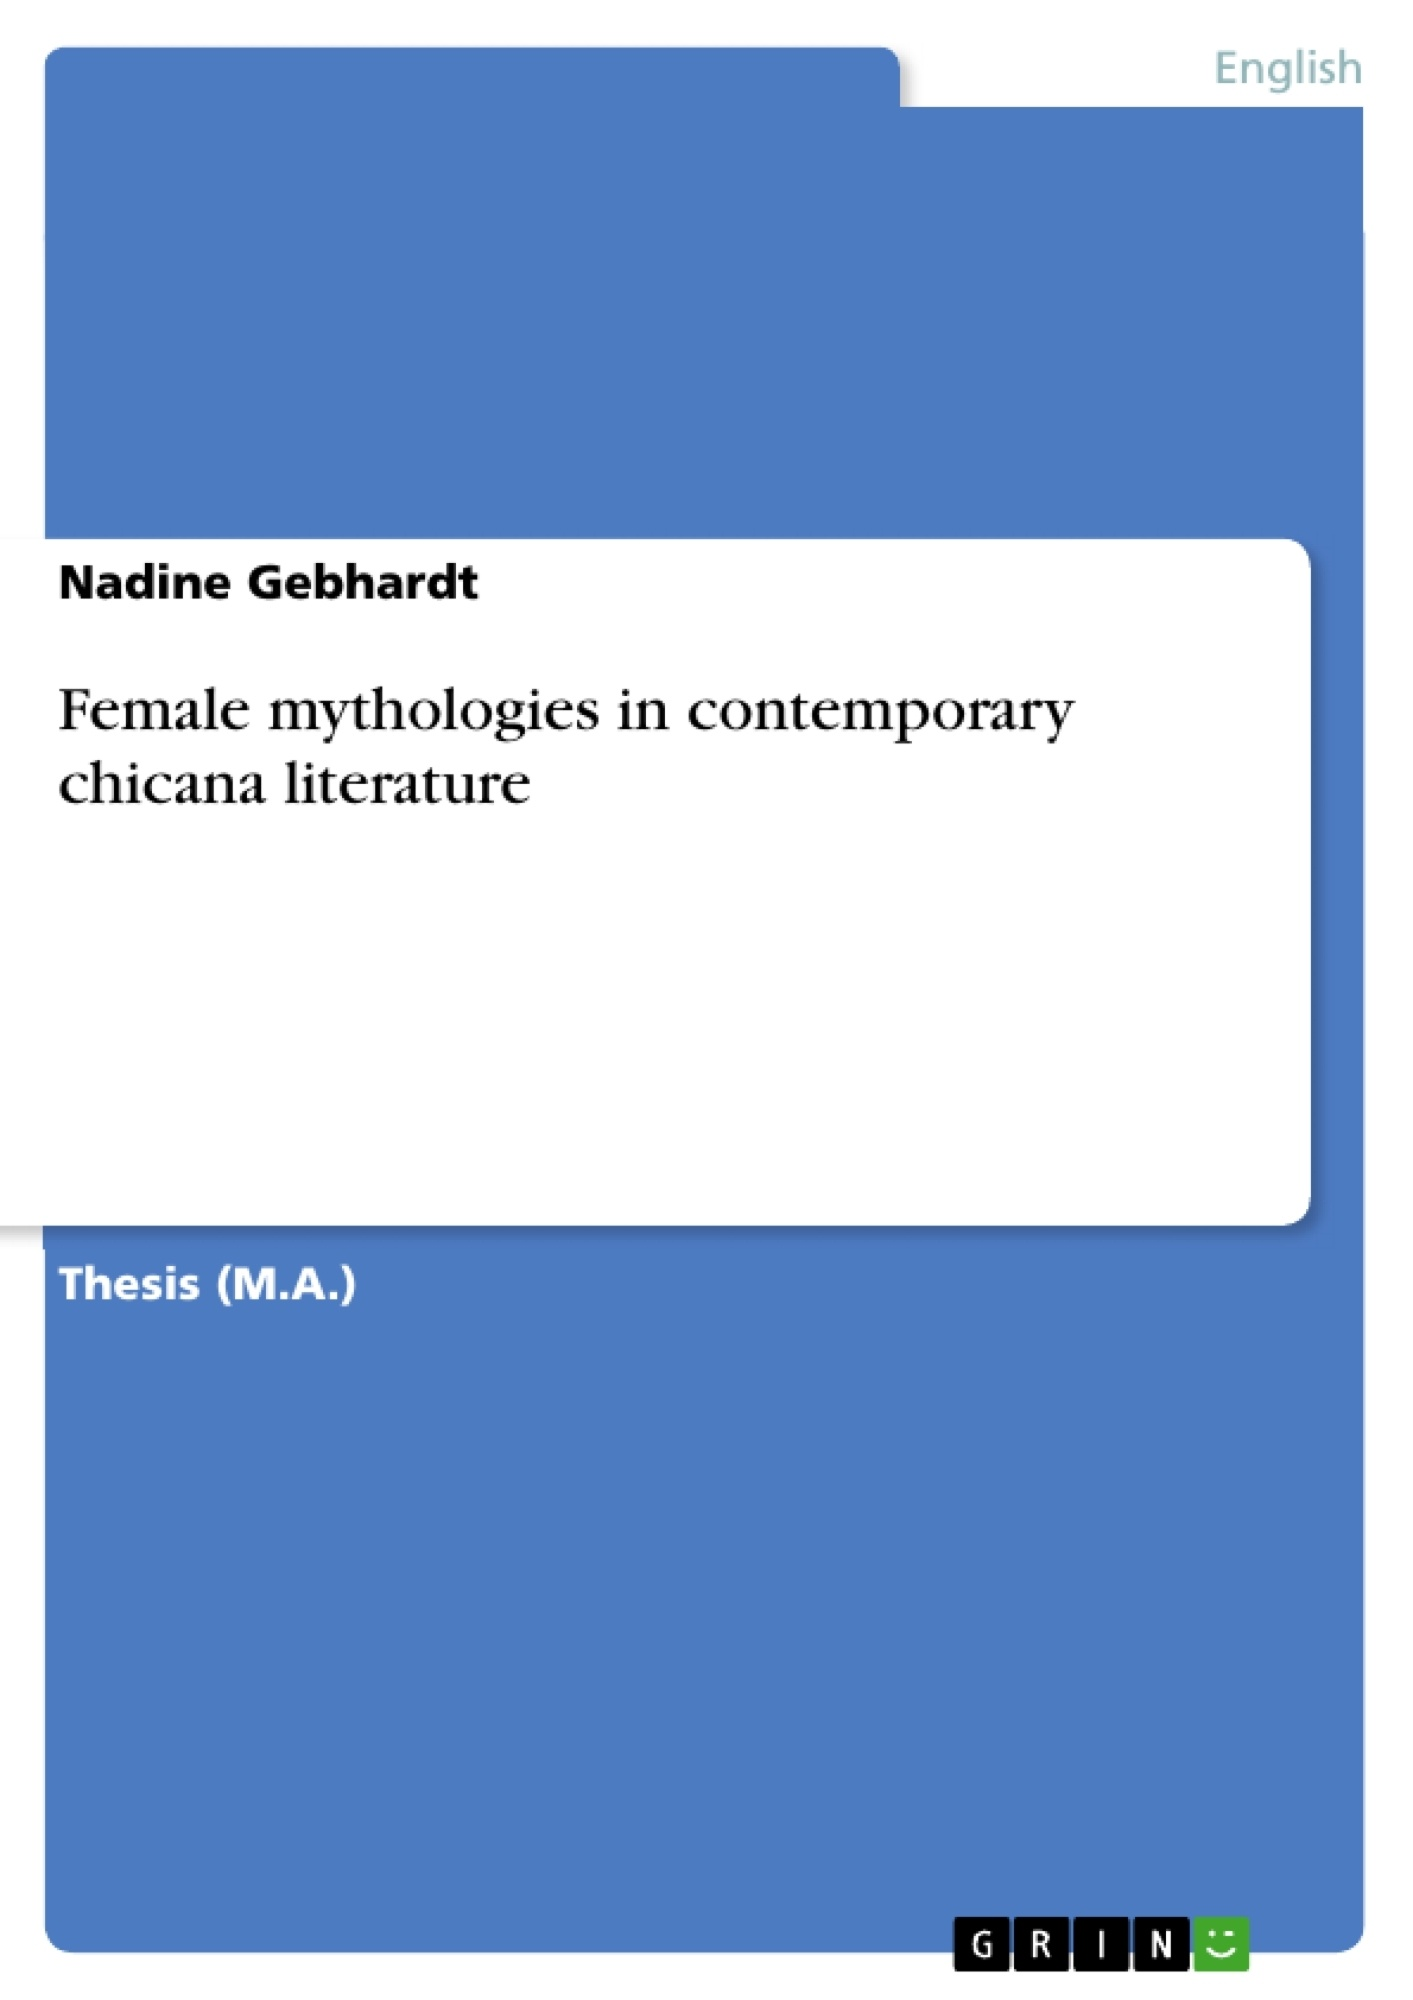 Title: Female mythologies in contemporary chicana literature